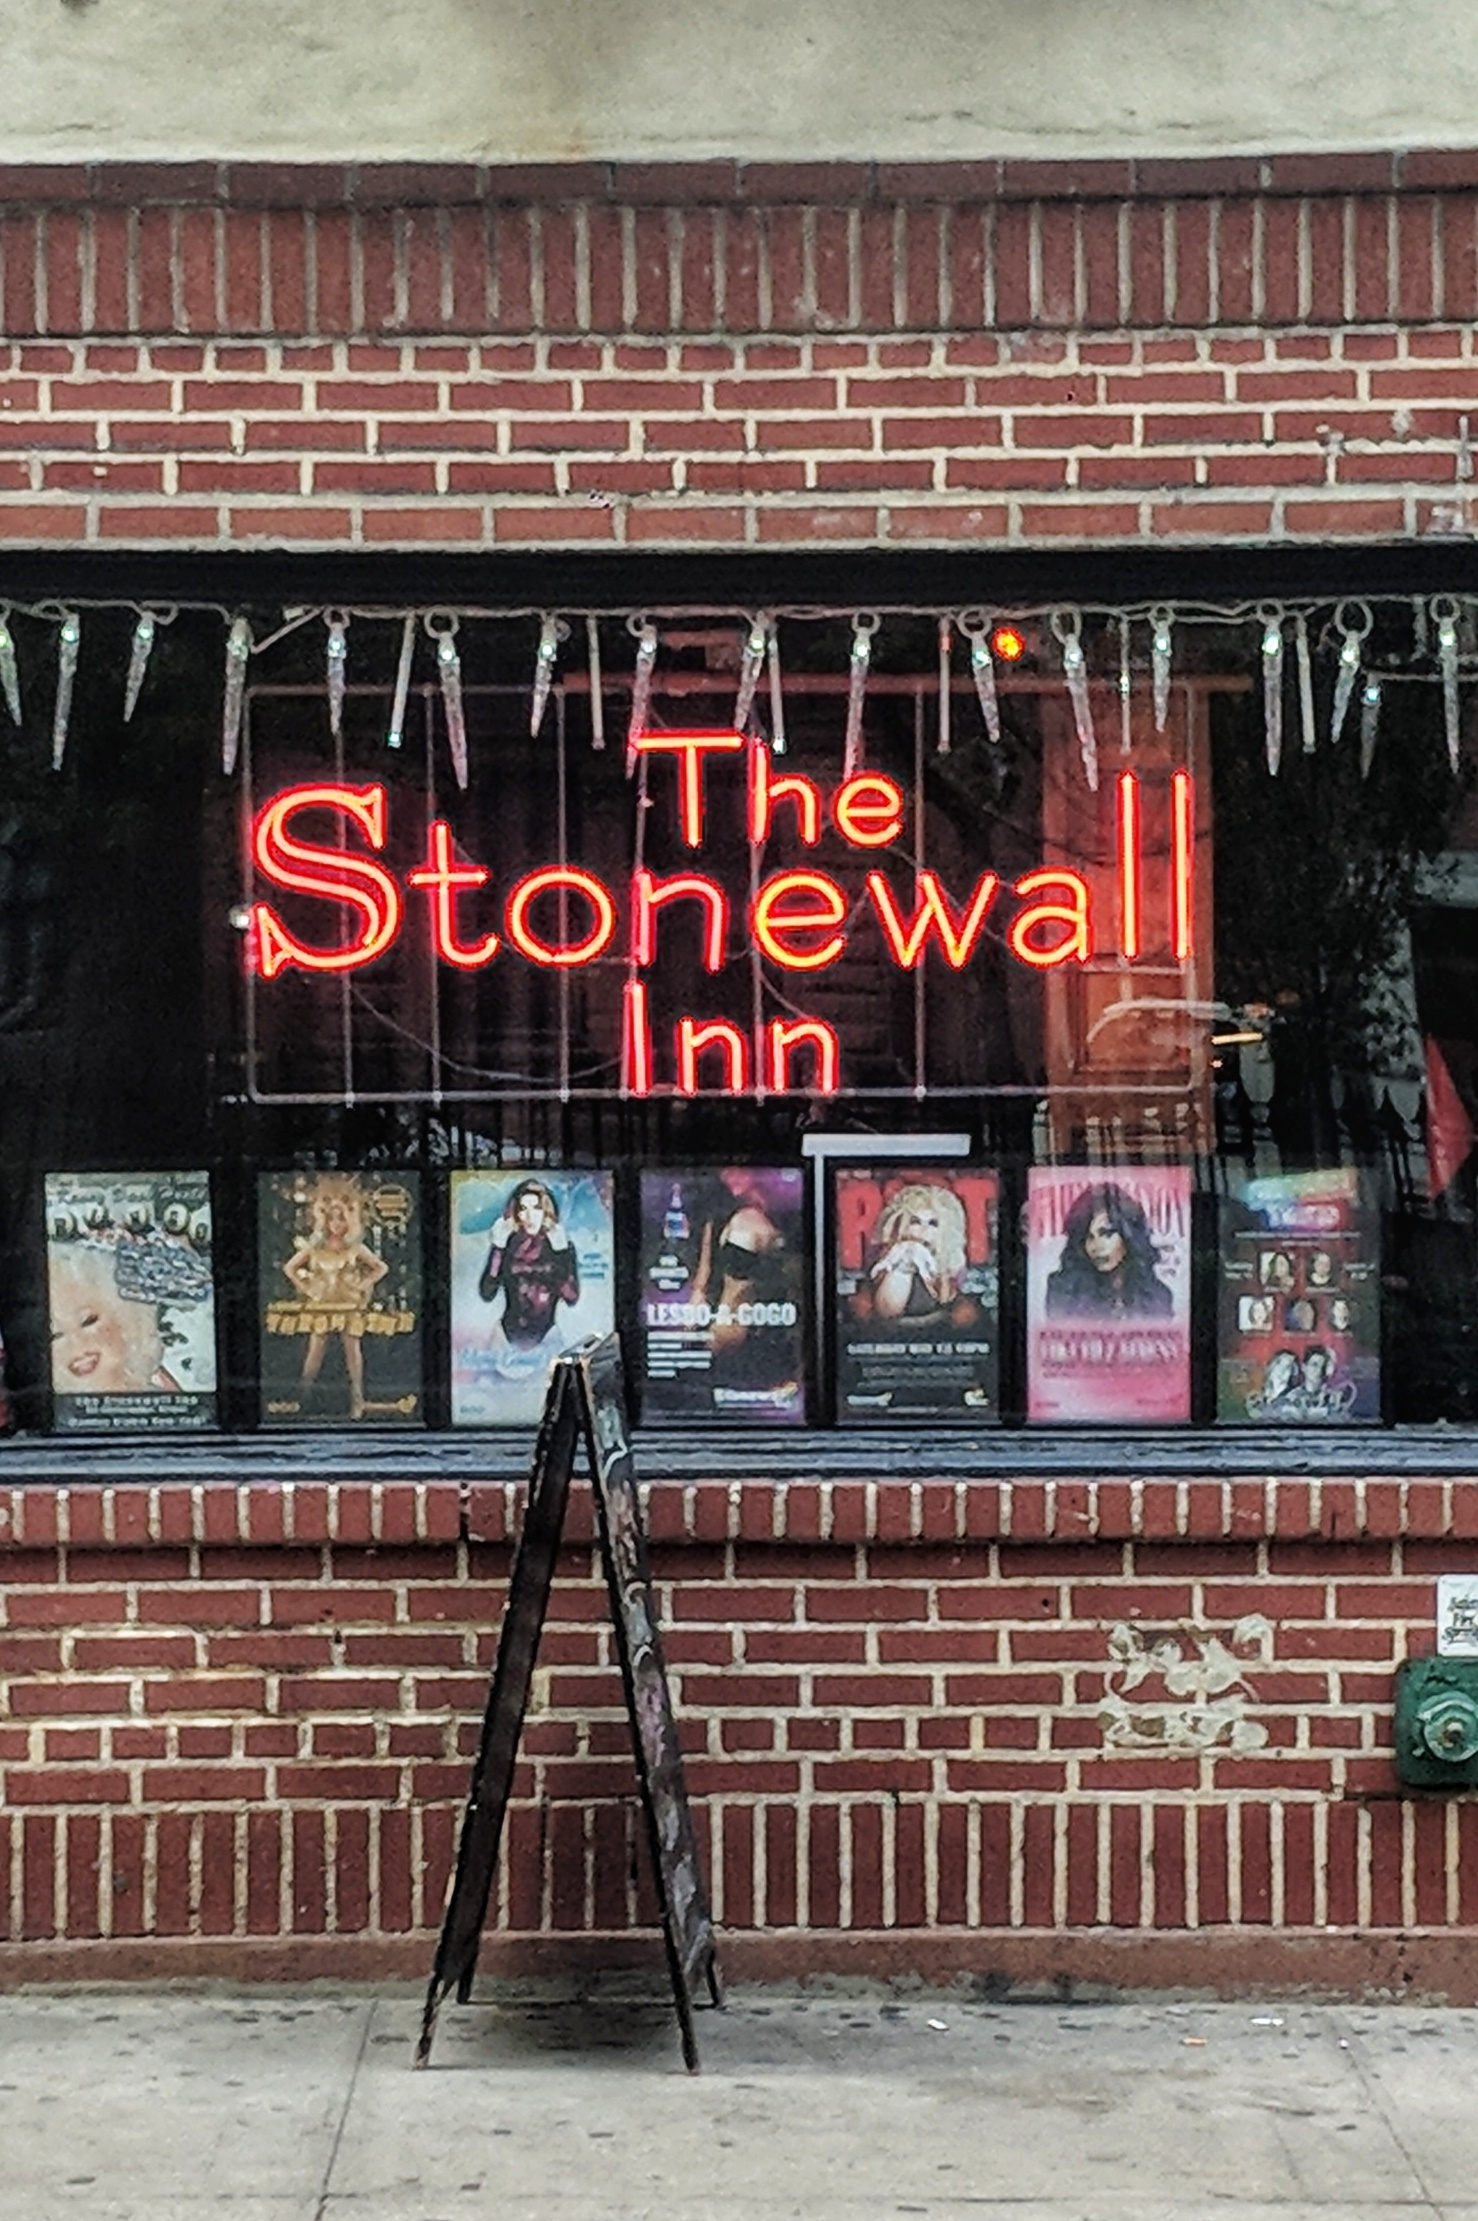 stonewall-inn-adam-groffman.jpeg?1559654064